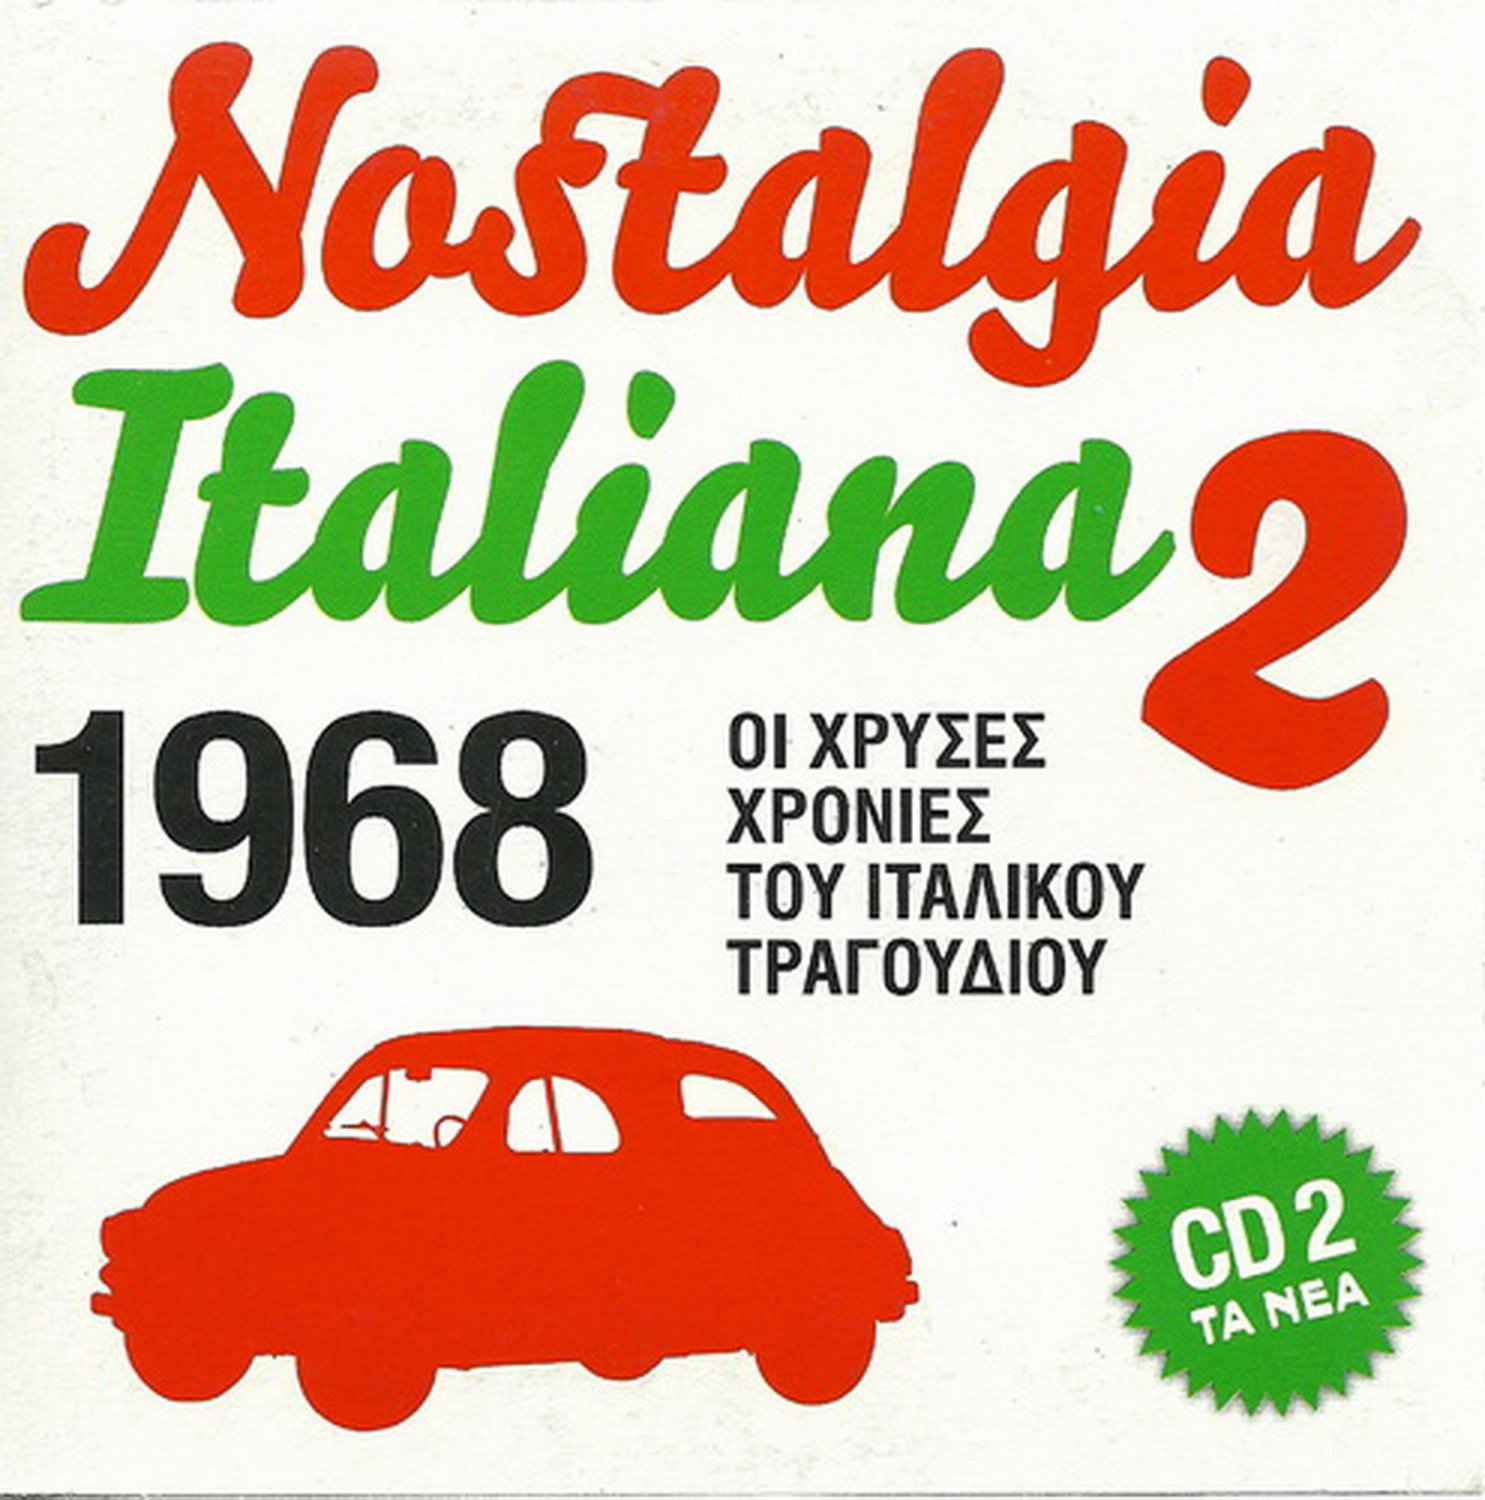 NOSTALGIA ITALIANA 1968 cd2 PRAVO MORANDI BATTISTI SOLO MILVA 19 tracks CD